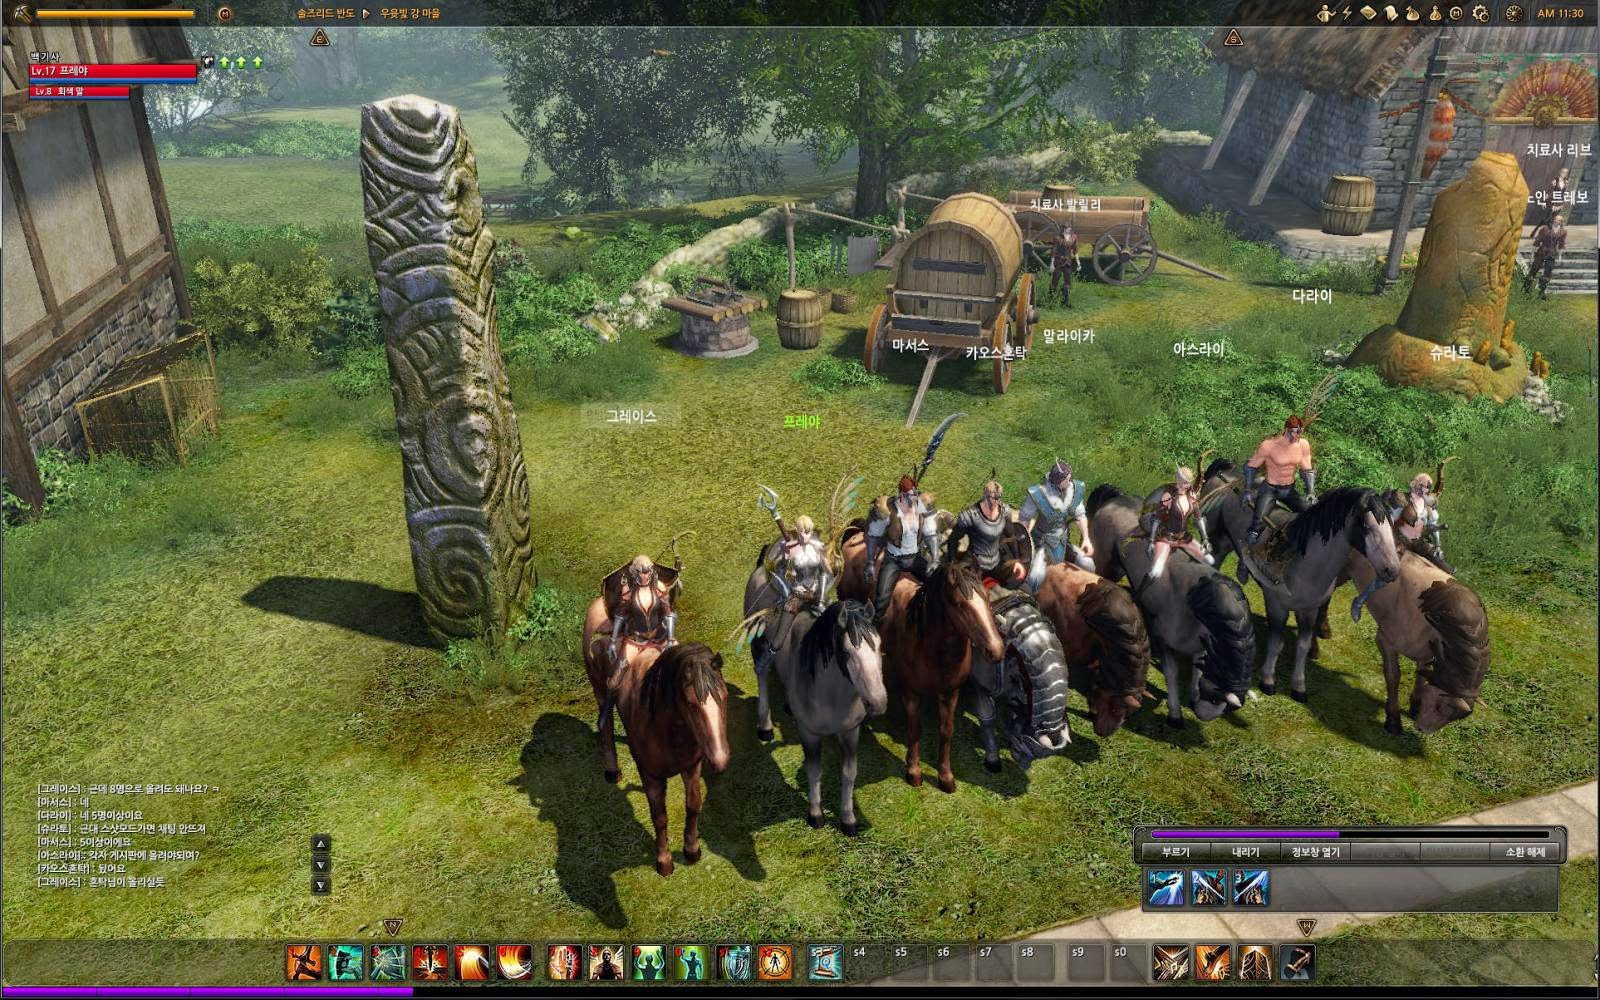 MMO Updates - MMORPG Blog: Online Games MMO